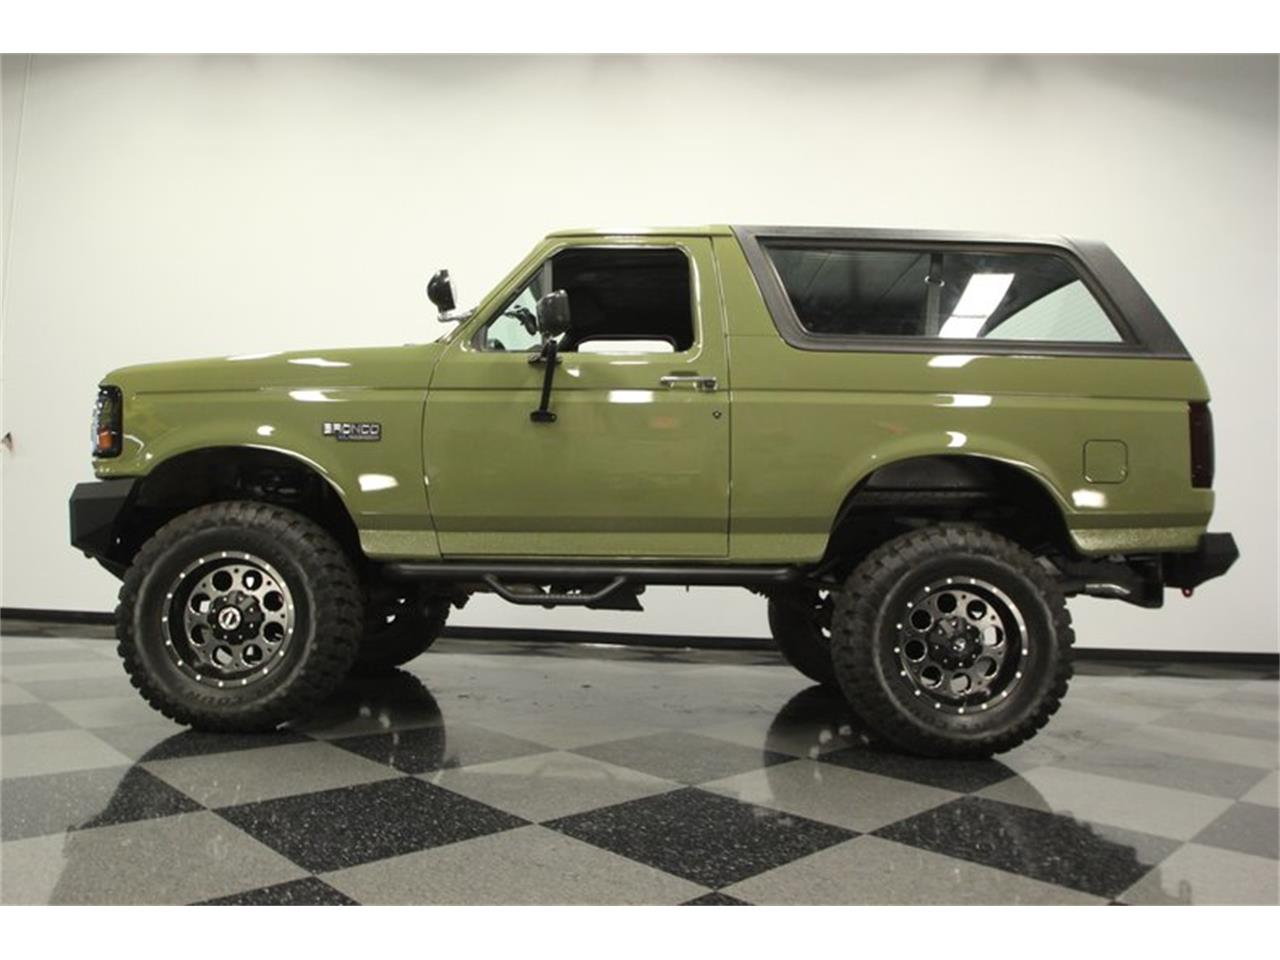 1996 Ford Bronco for sale in Lutz, FL – photo 23